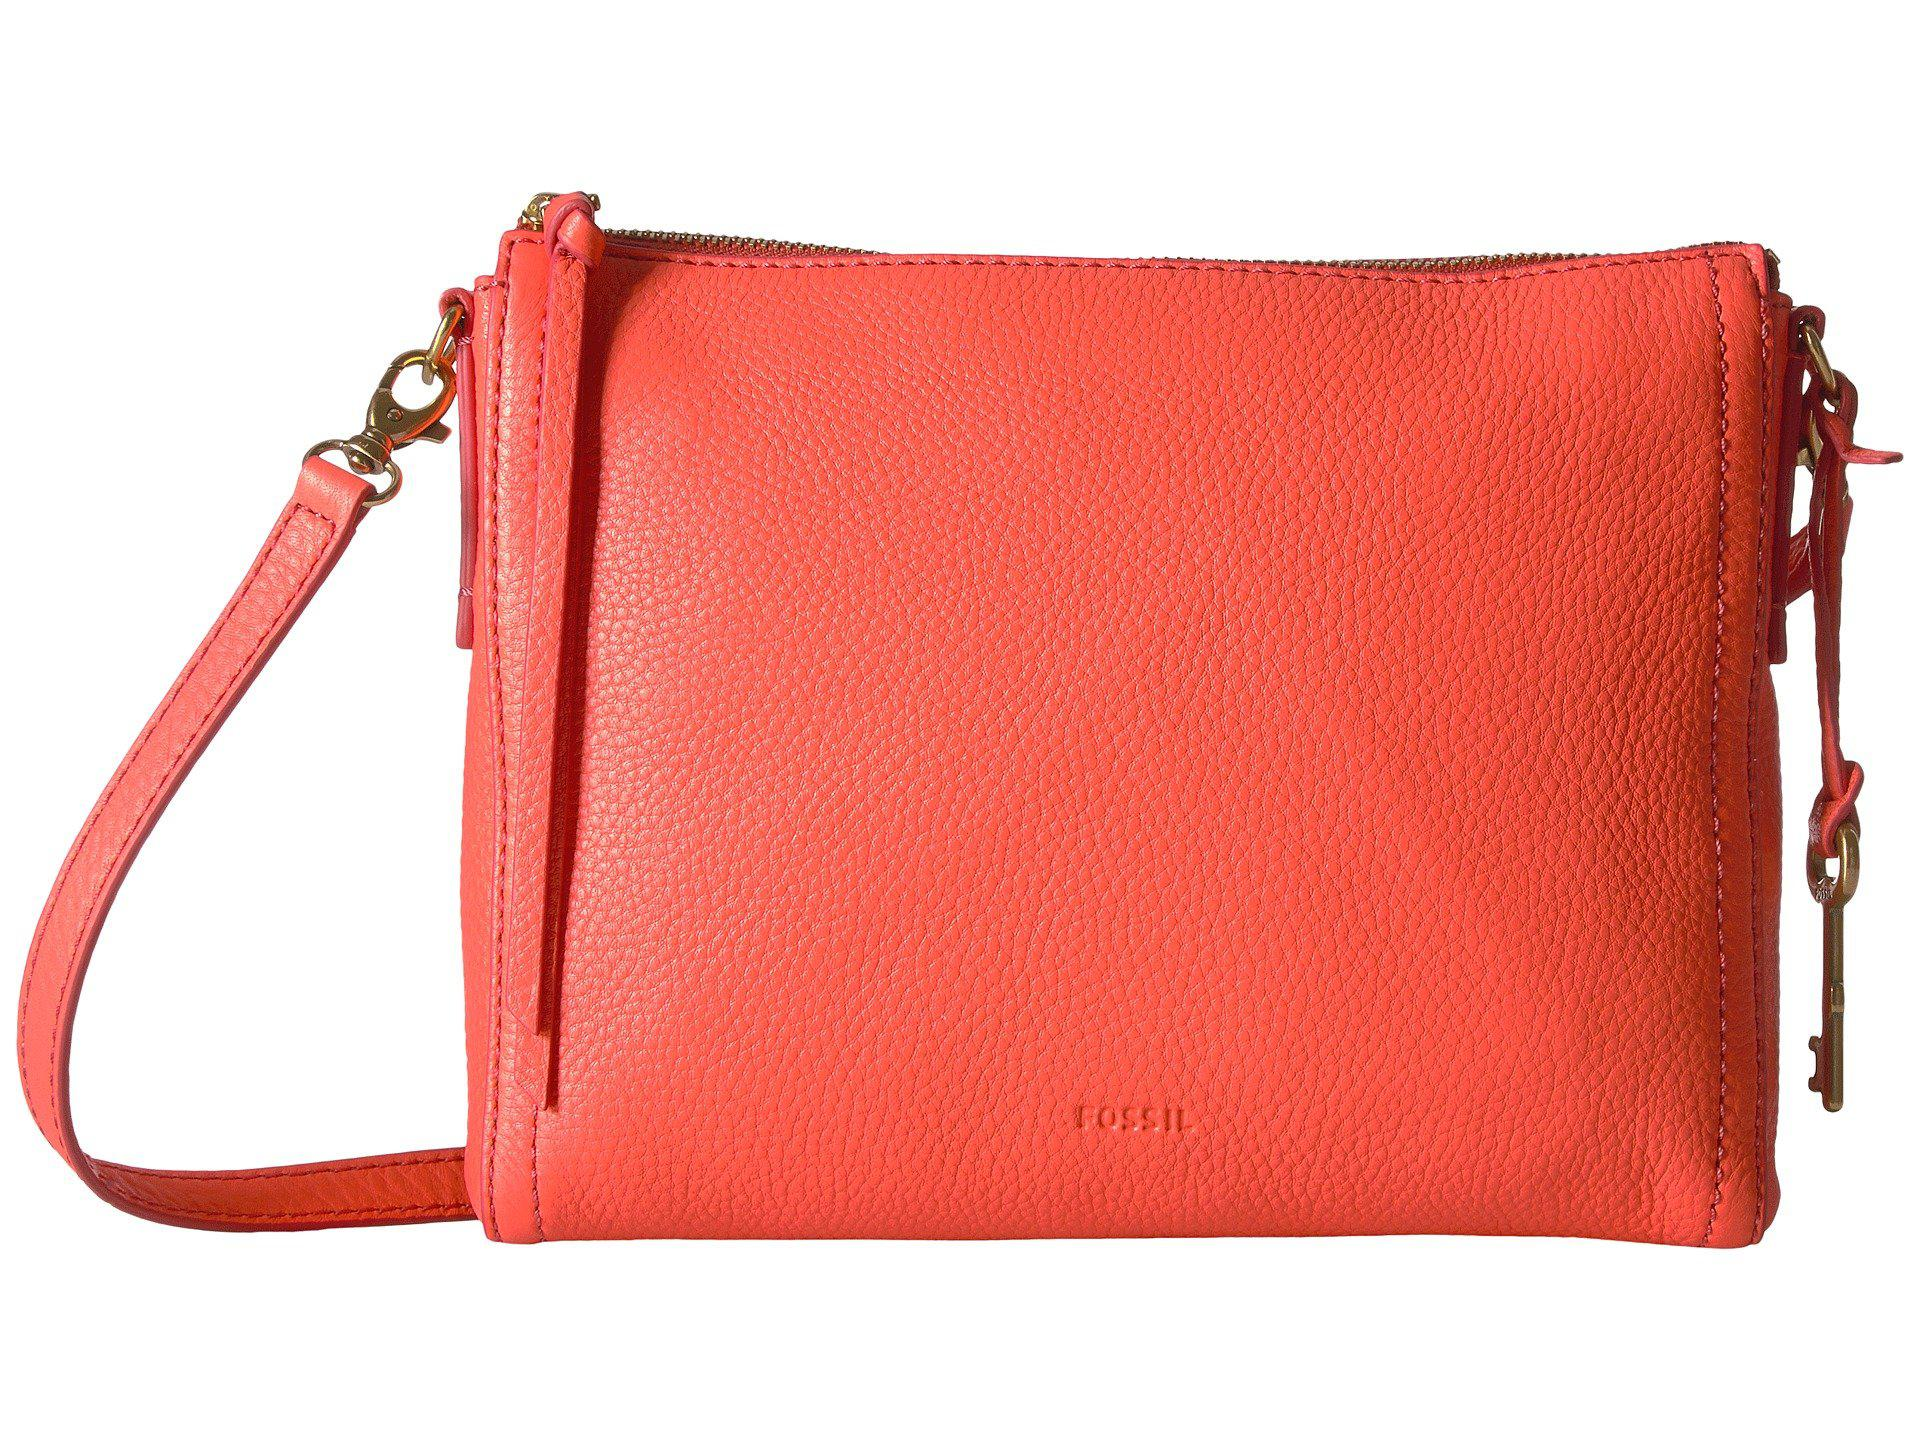 31788d8119a5 Lyst - Fossil Emma East west Crossbody in Red